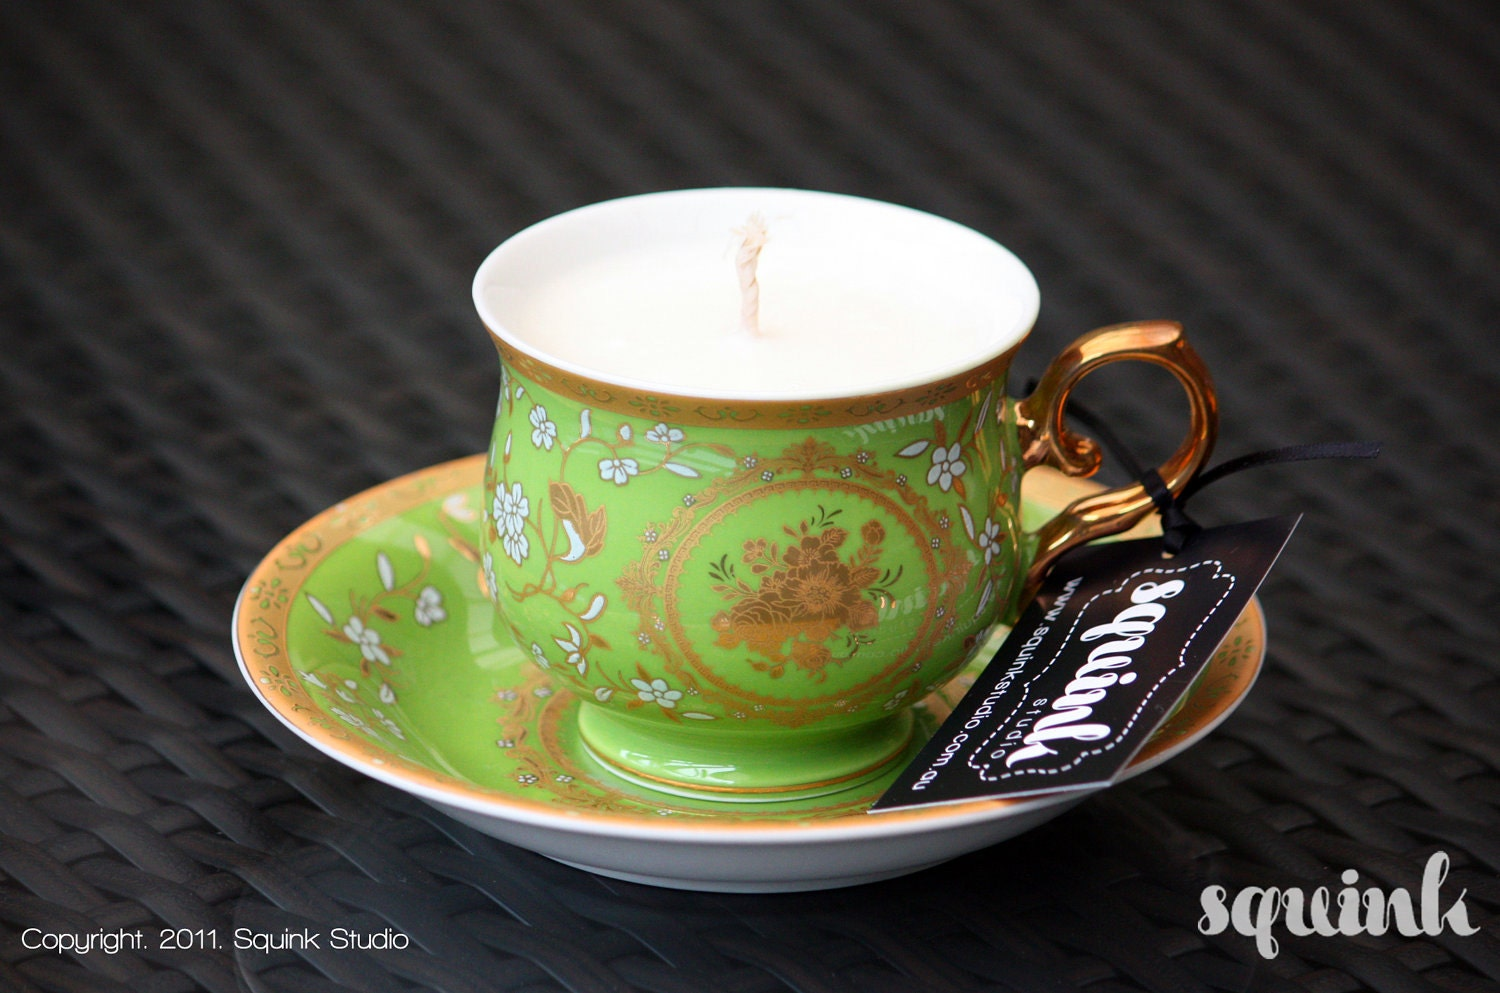 Soy Teacup Candles - Limited Christmas Edition - Triple Scented -Lime & Passionfruit